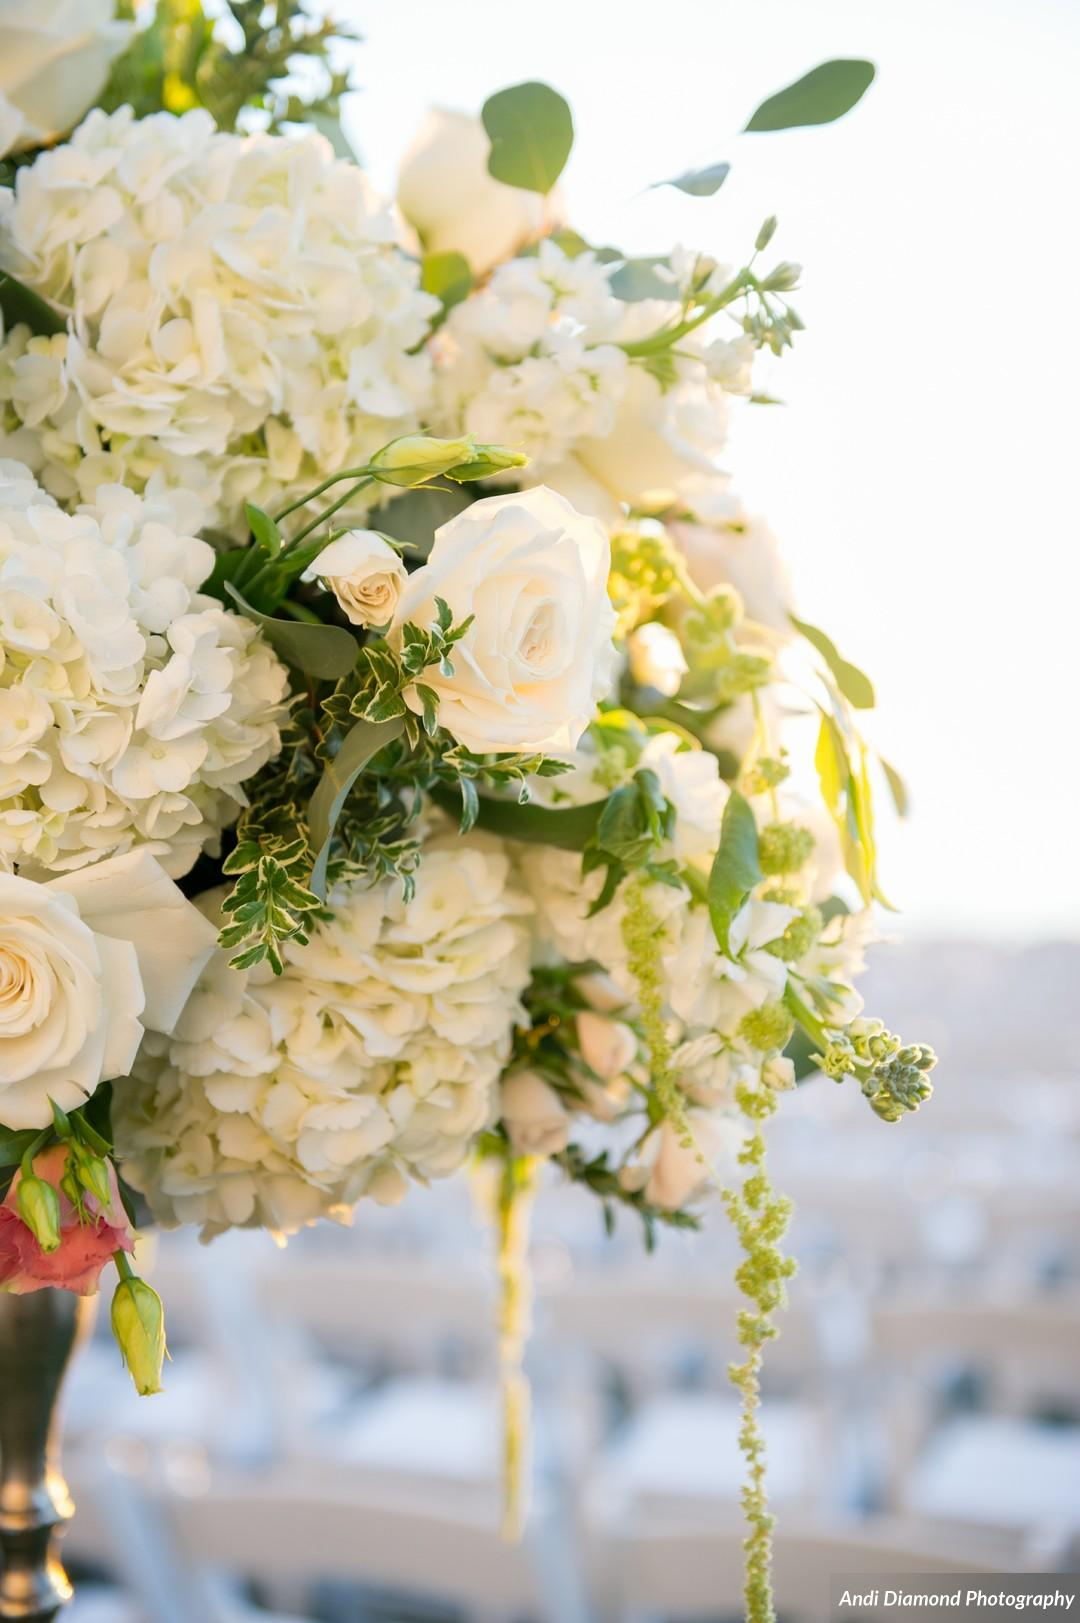 Lush arrangements of floral and greenery complimented the natural beauty of the ceremony space on Clearwater Beach.